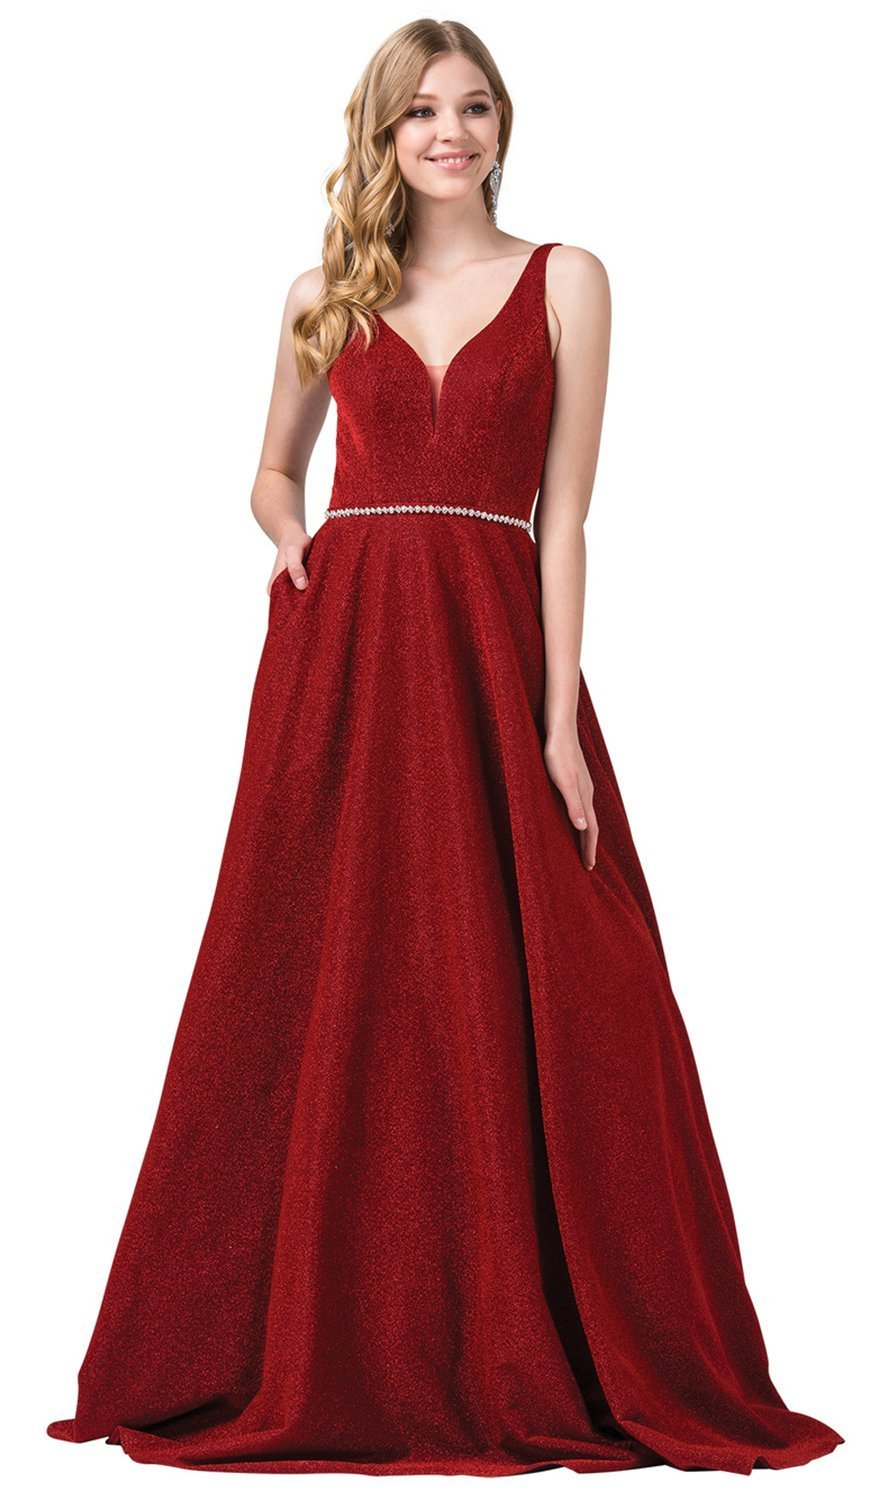 Dancing Queen - 2706 Deep V-neck A-line Gown in Red